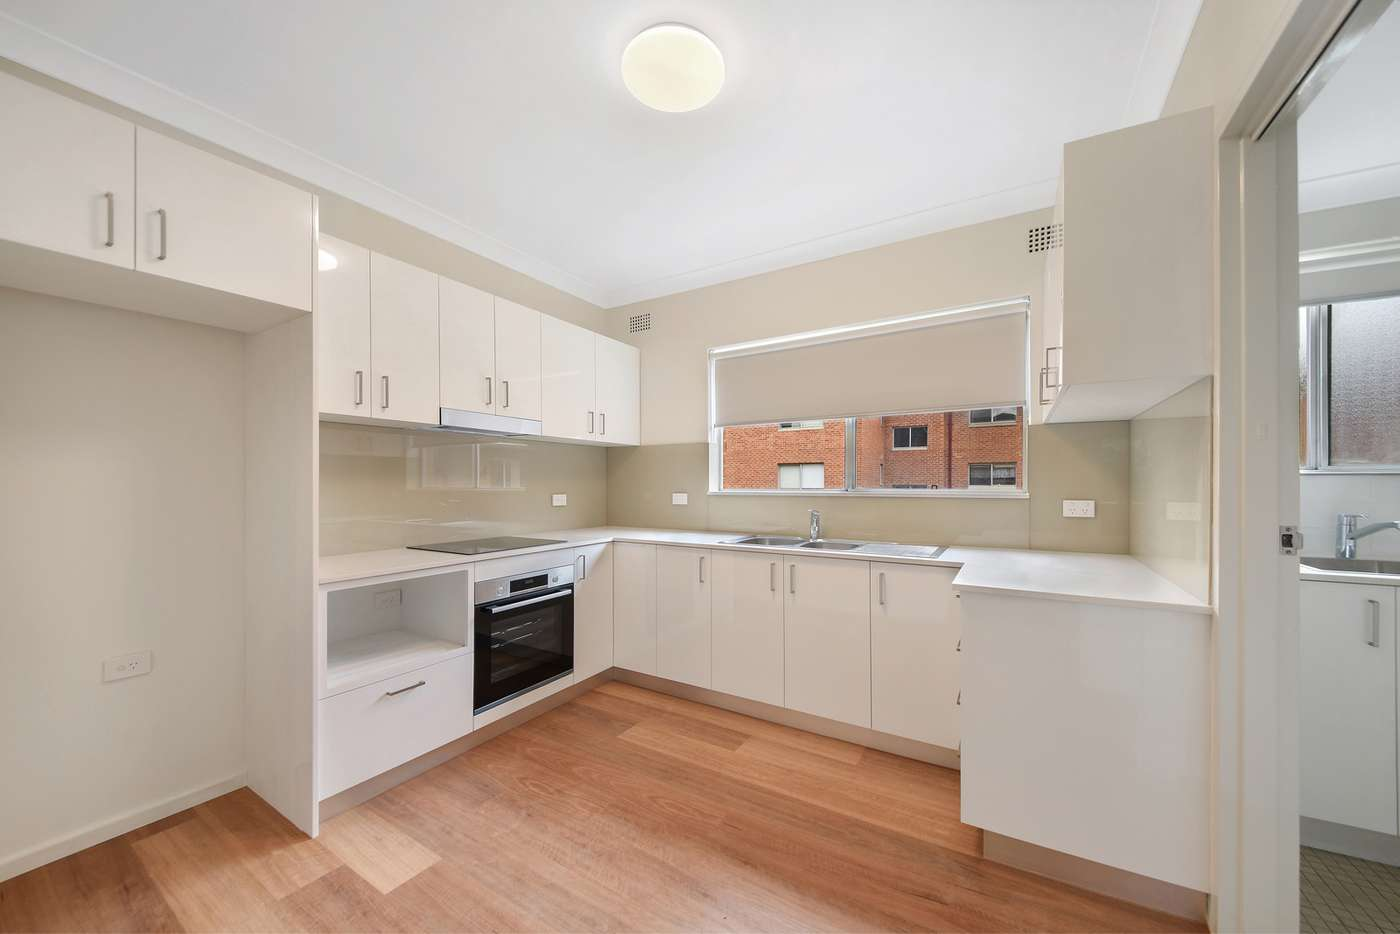 Main view of Homely apartment listing, 15/5-9 Dural Street, Hornsby NSW 2077